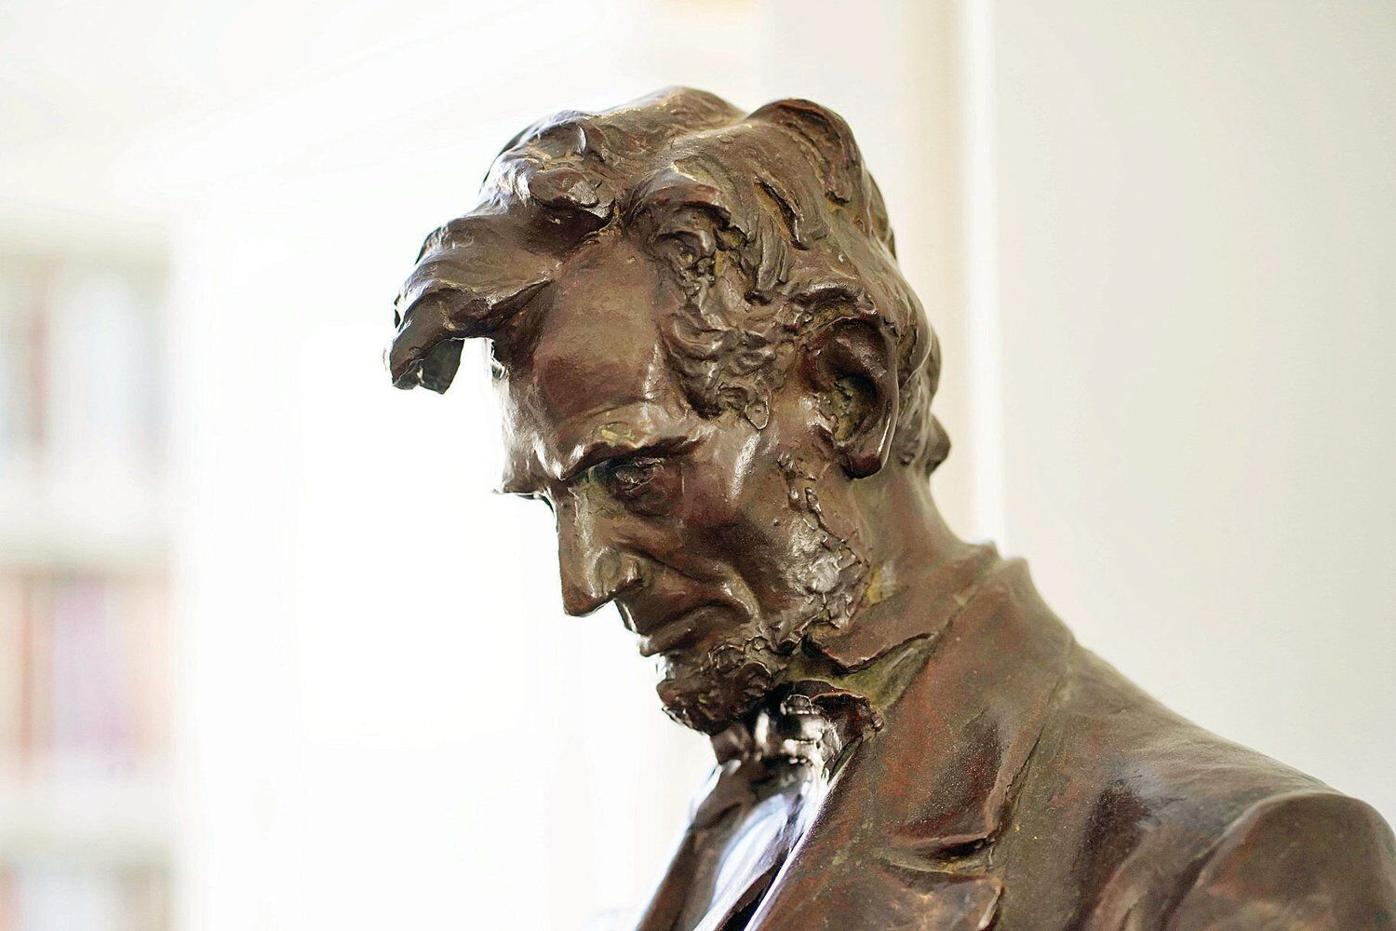 Mini-replica of French's Lincoln statue now in good standing, permanently, at Stockbridge library